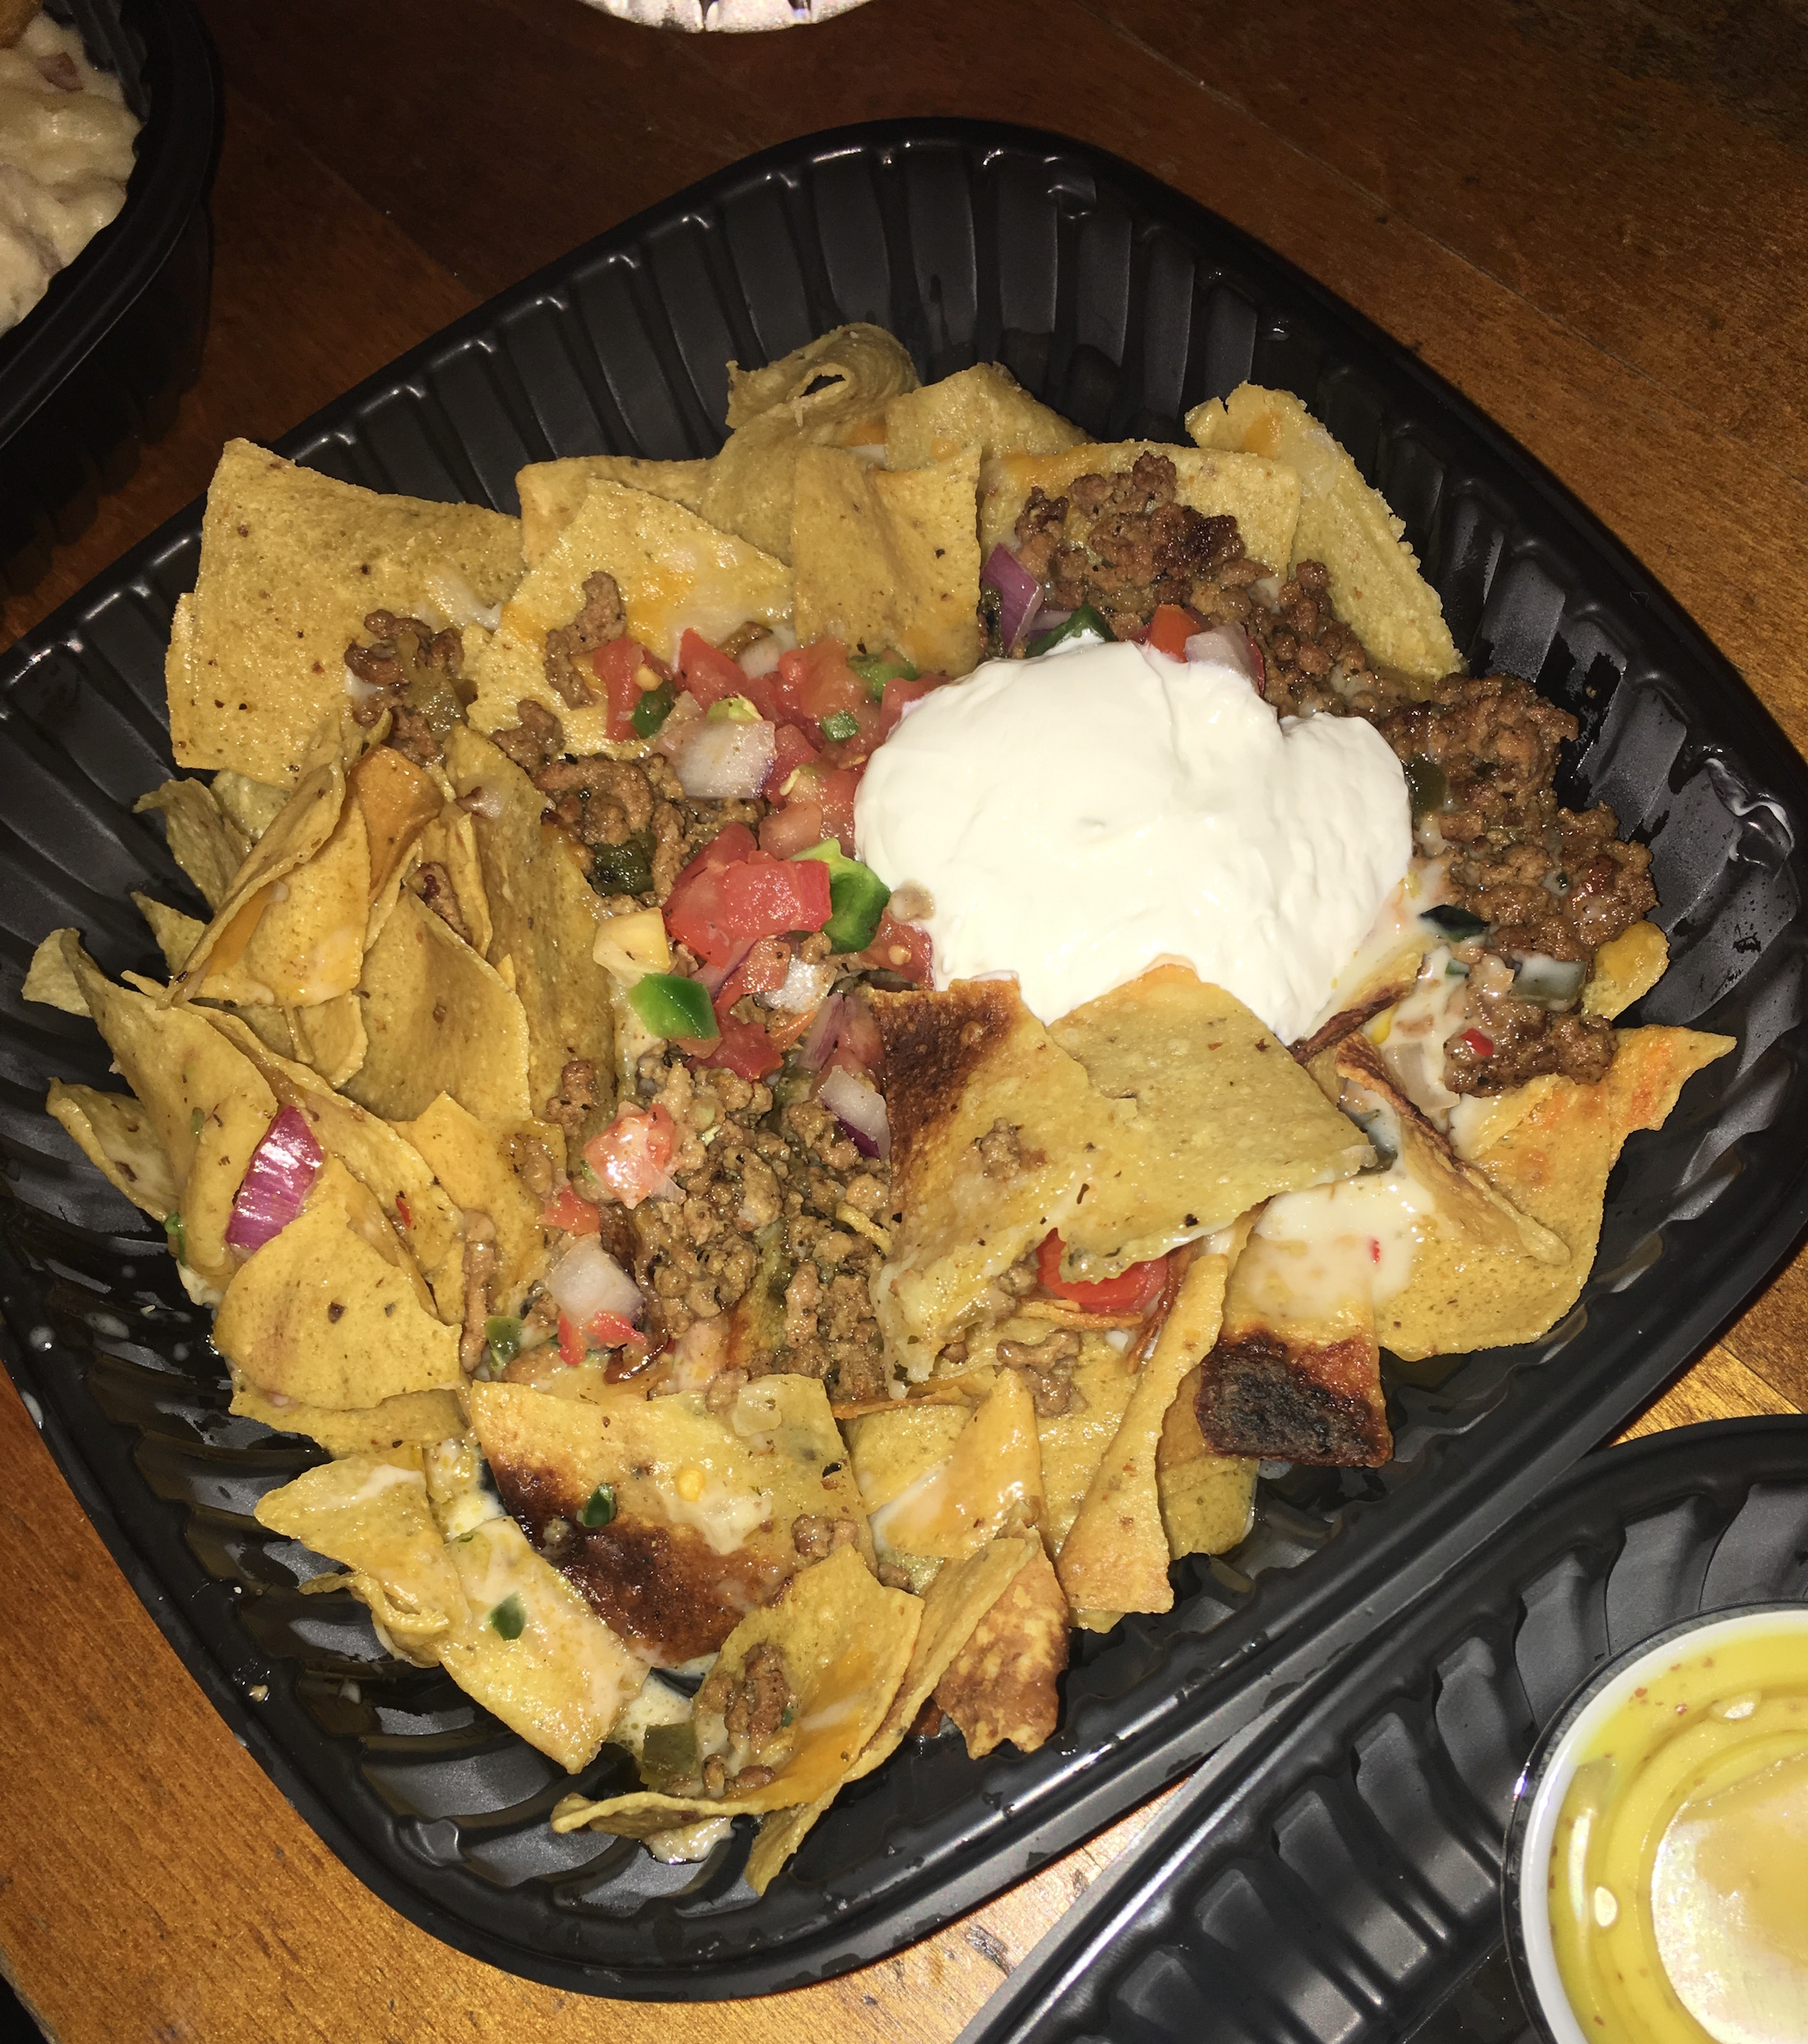 Horrible food nachos we re over cooked and barely any toppings and just weren t good mash potatoes were discolored weird texture and not good